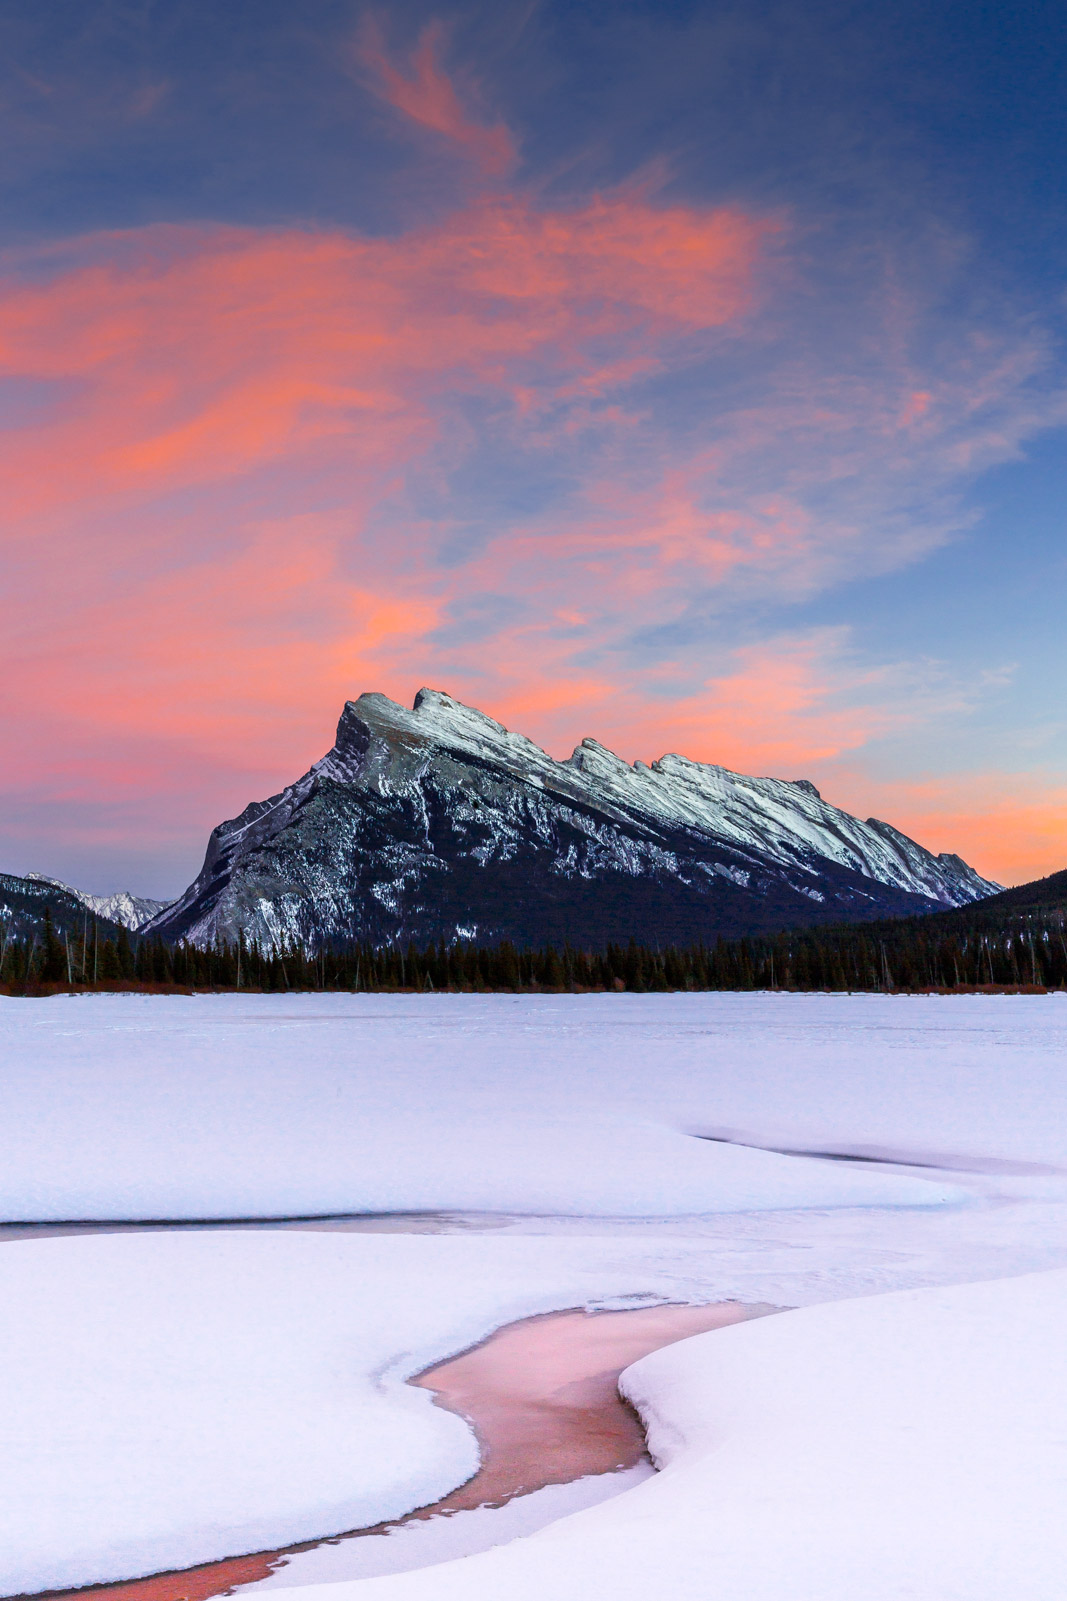 Aberta, Canada, , Banff, Mount Rundle, Sunset, Mountain, Snow, limited edition, photograph, fine art, landscape, photo